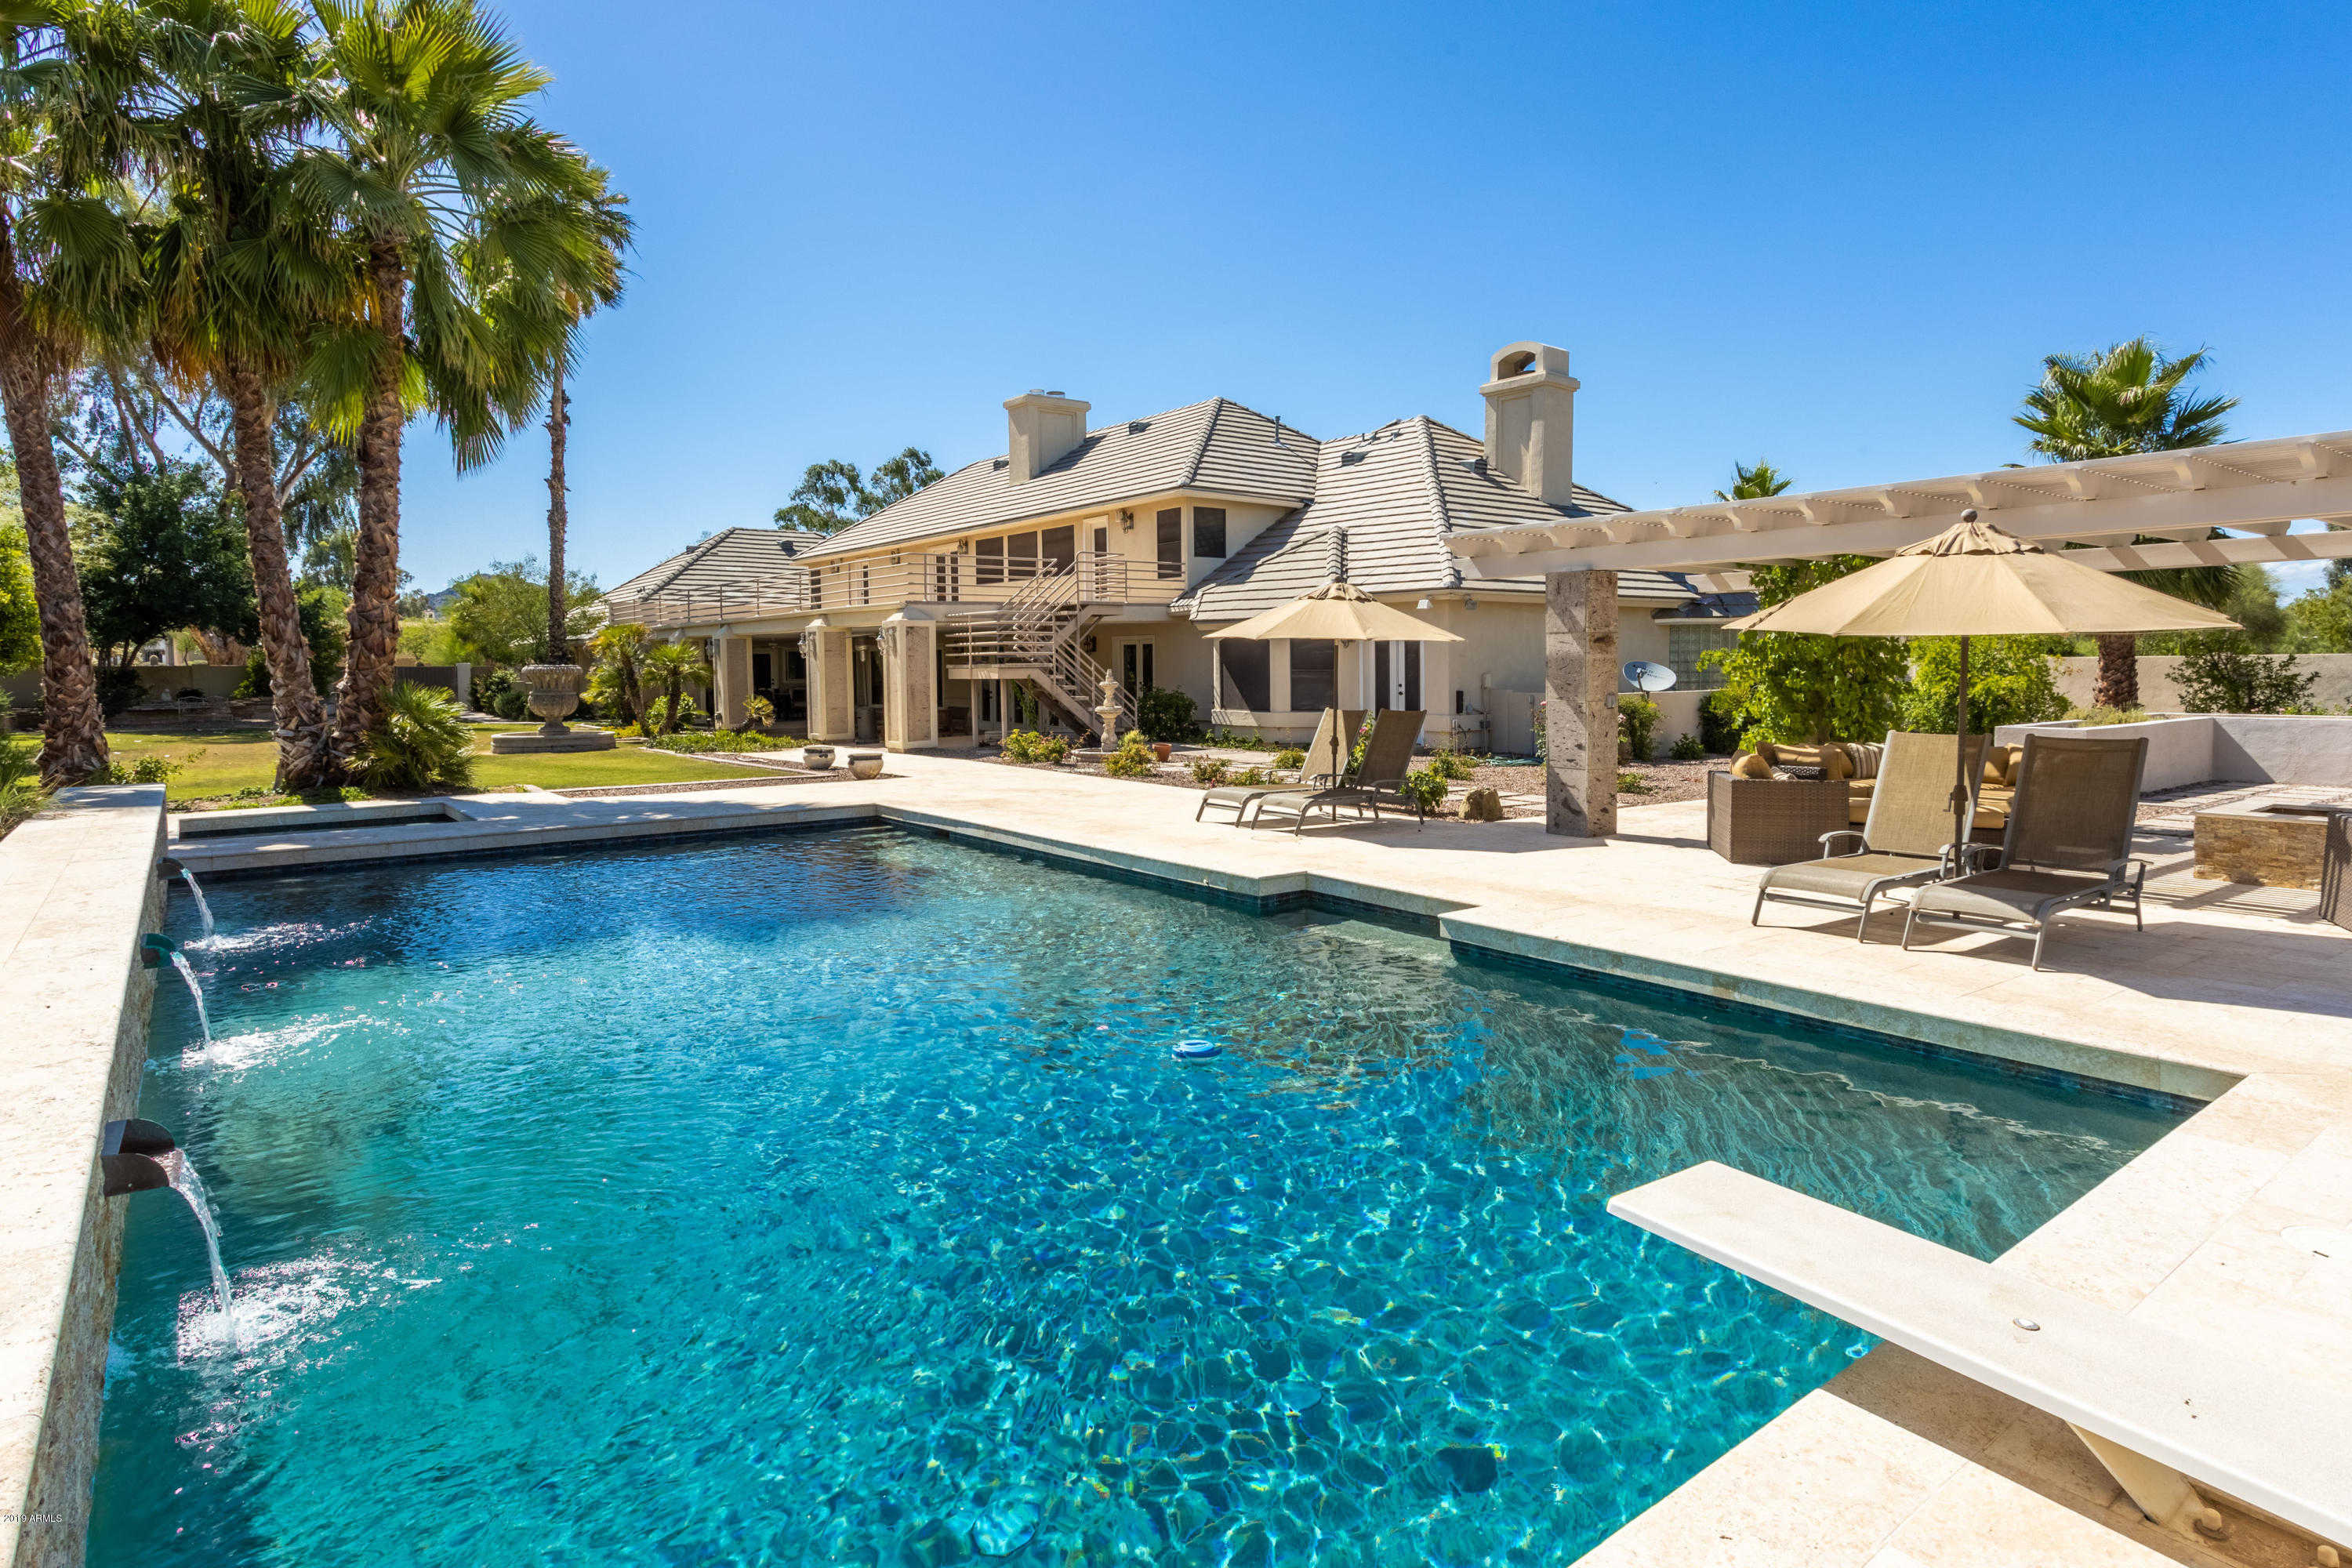 $2,250,000 - 5Br/7Ba - Home for Sale in Paradise, Paradise Valley